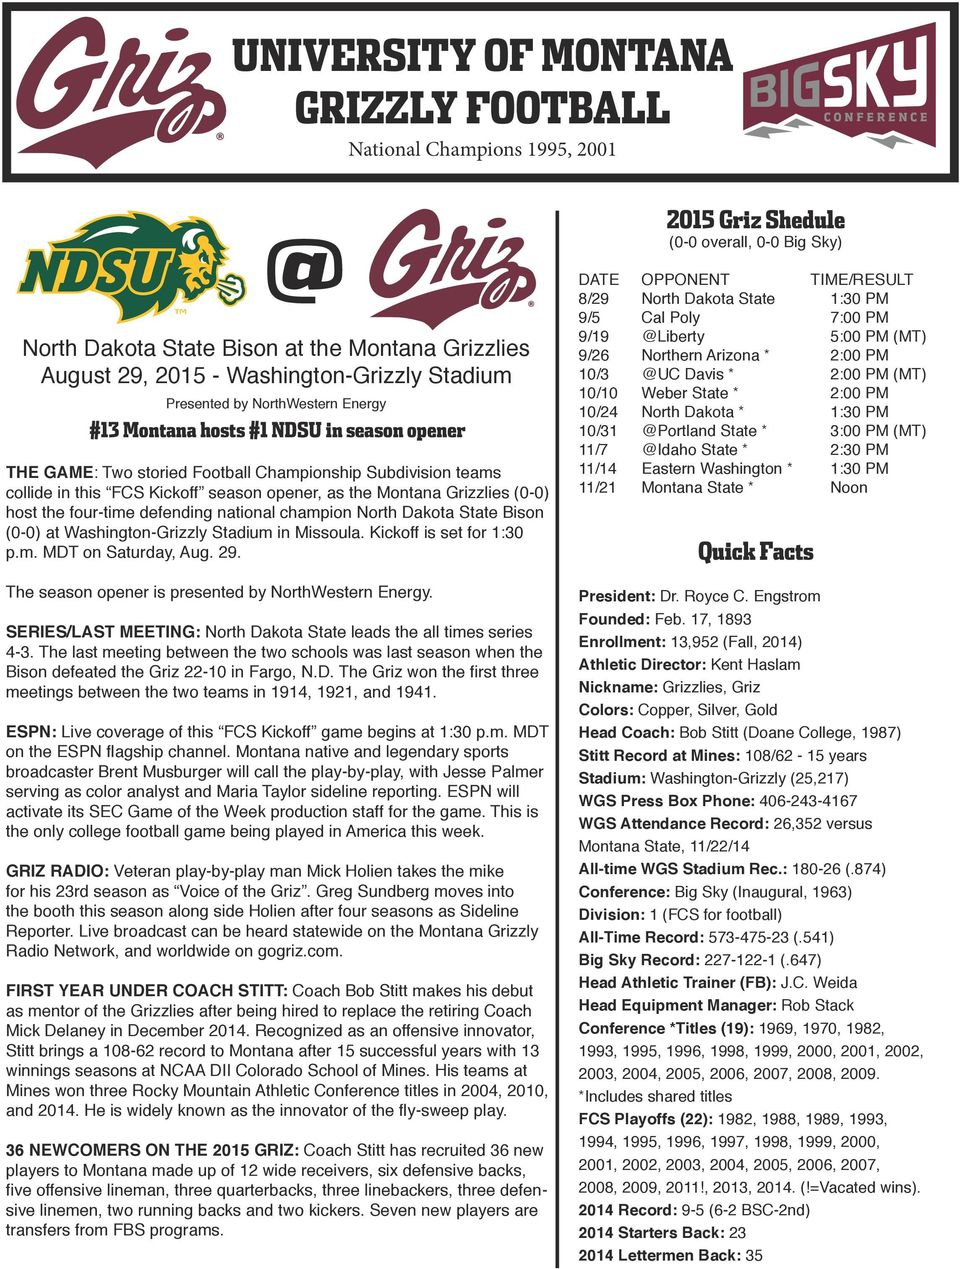 defending national champion North Dakota State Bison (0-0) at Washington-Grizzly Stadium in Missoula. Kickoff is set for 1:30 p.m. MDT on Saturday, Aug. 29.